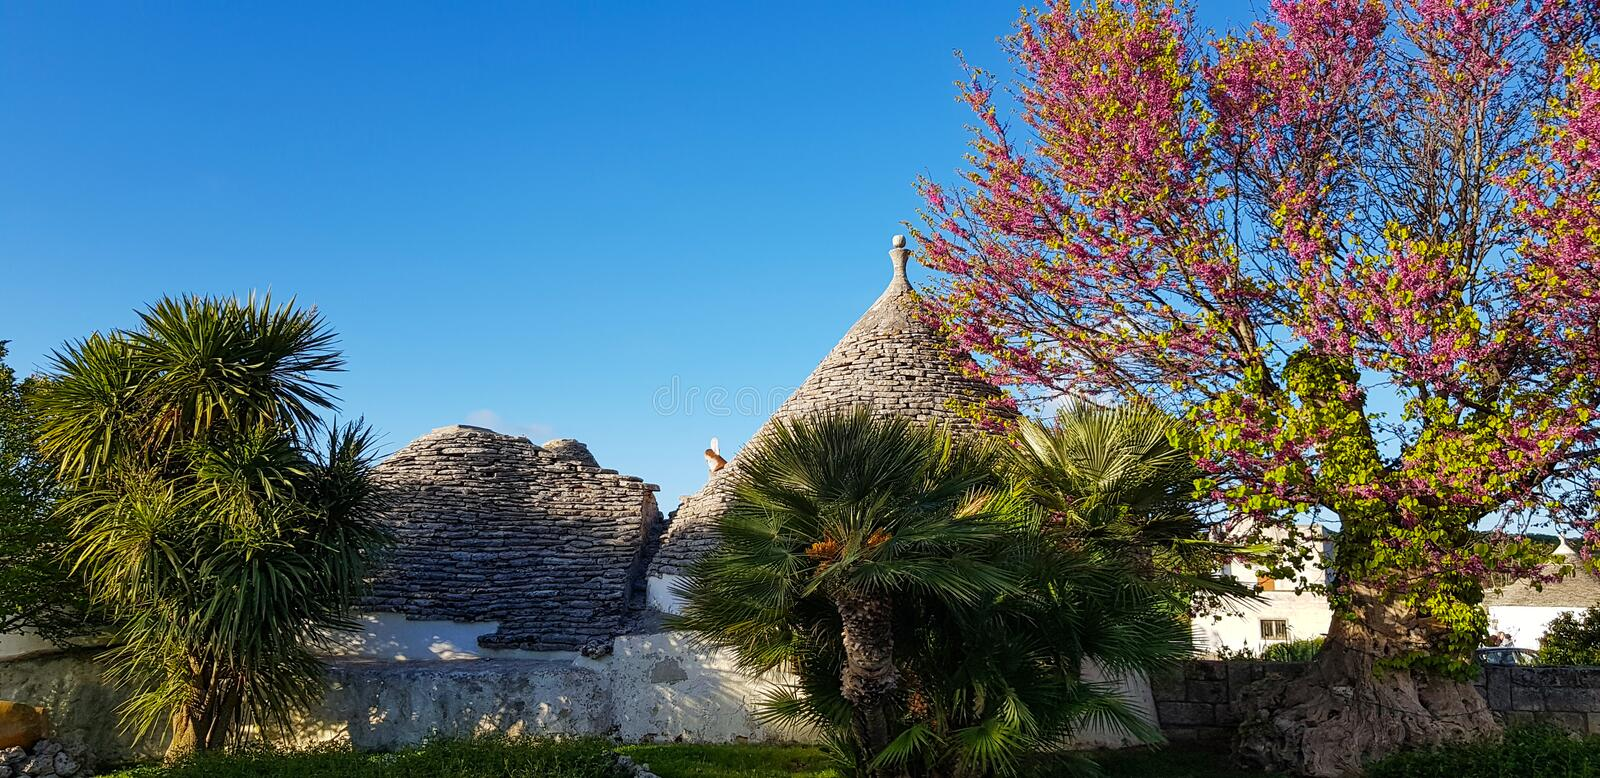 Beautiful town of Alberobello with trulli houses. It is an Italian town in the metropolitan city of Bari, in Puglia,  Italy.  royalty free stock photo